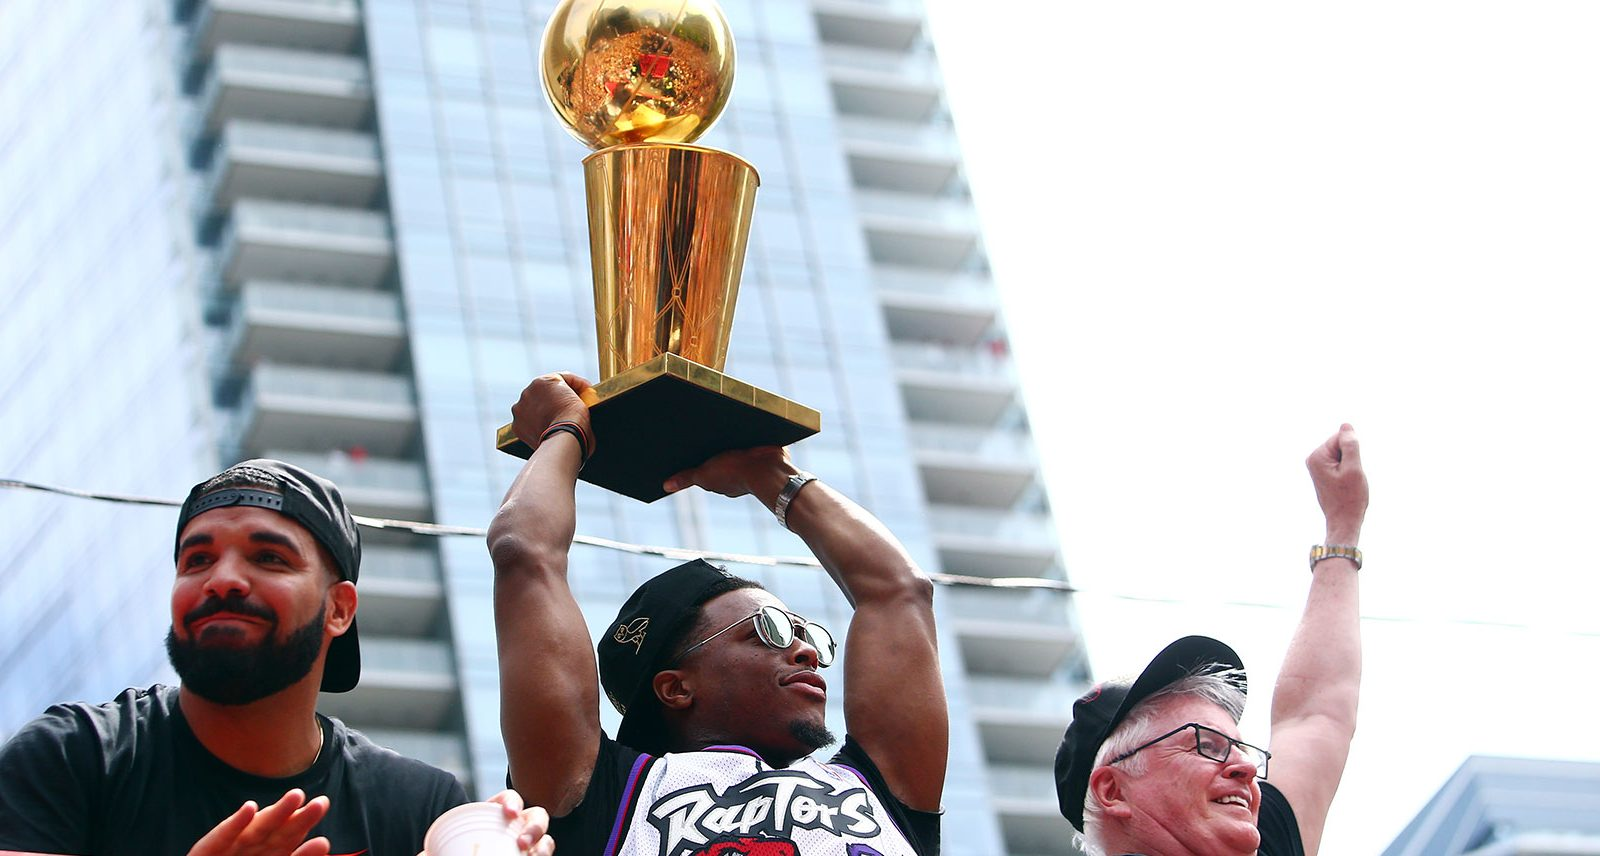 The 6 Best Moments from the Toronto Raptors Victory Parade